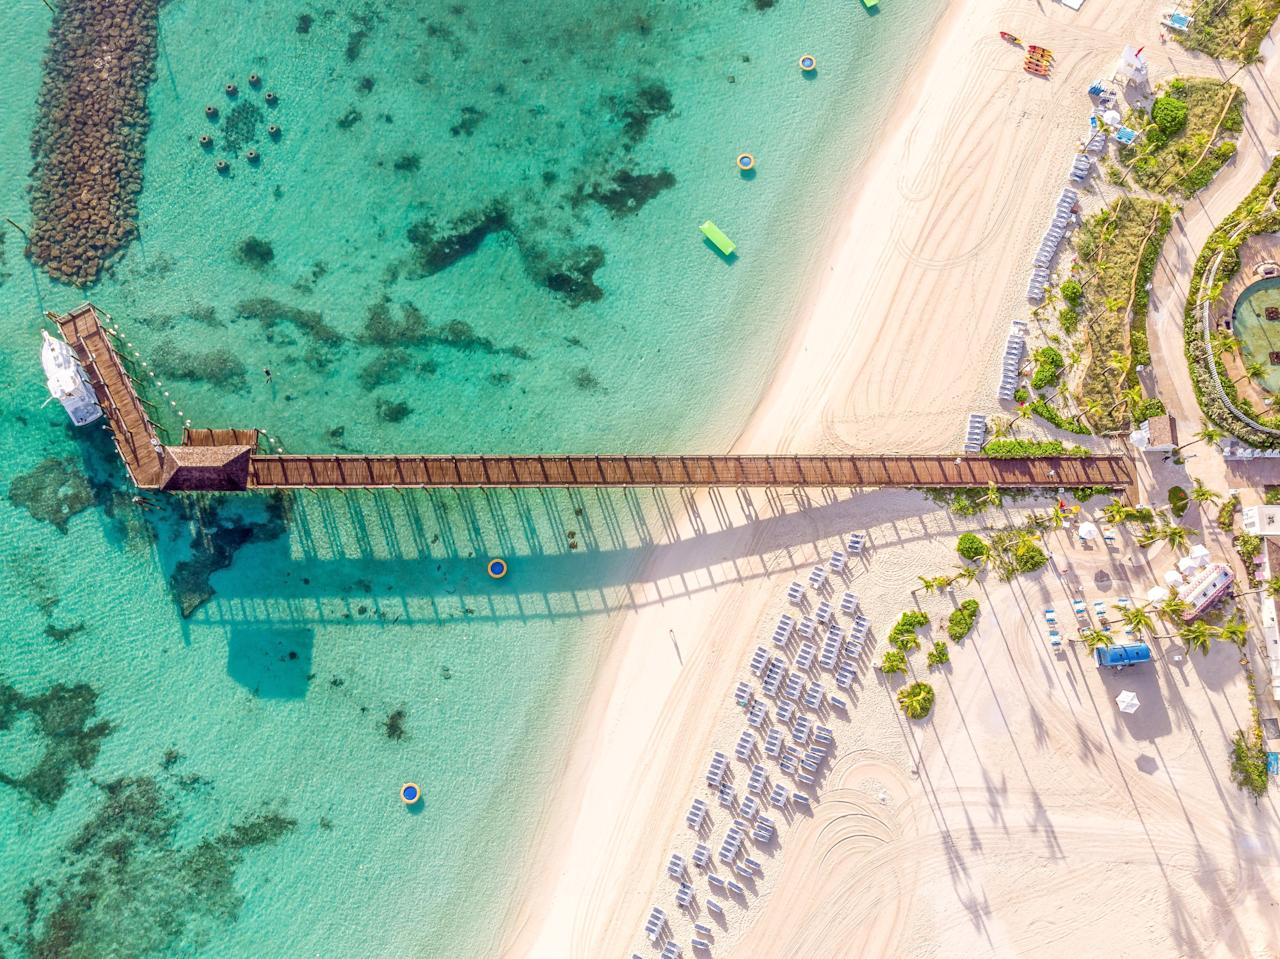 """<p><strong>Average winter temperatures:</strong> High of 77 degrees, low of 62 degrees</p> <p>East Coasters are lucky to have the perpetually sunny Caribbean in close proximity, and the <a href=""""https://www.cntraveler.com/readers-choice-awards/caribbean-atlantic/atlantic-top-resorts?mbid=synd_yahoo_rss"""" target=""""_blank"""">Bahamas</a>, with so many quick direct flights, is one of the region's best and most convenient options. (Although technically in the Atlantic, the crystal clear turquoise waters here are on par with anything found farther south.) This winter is a particularly great time to visit, as recovery efforts post-Hurricane Dorian are welcoming tourism dollars with open arms. Head to the island of Nassau for some of our favorite, unscathed properties, including <a href=""""https://www.cntraveler.com/hotels/nassau/sls-baha-mar?mbid=synd_yahoo_rss"""">SLS</a> and <a href=""""https://www.cntraveler.com/hotels/nassau/rosewood-baha-mar?mbid=synd_yahoo_rss"""">Rosewood</a> at the resort complex Baha Mar, as well as <a href=""""https://www.cntraveler.com/story/swimwear-designer-marysia-reeves-guide-to-the-bahamas?mbid=synd_yahoo_rss"""">Harbour Island</a>.</p>"""